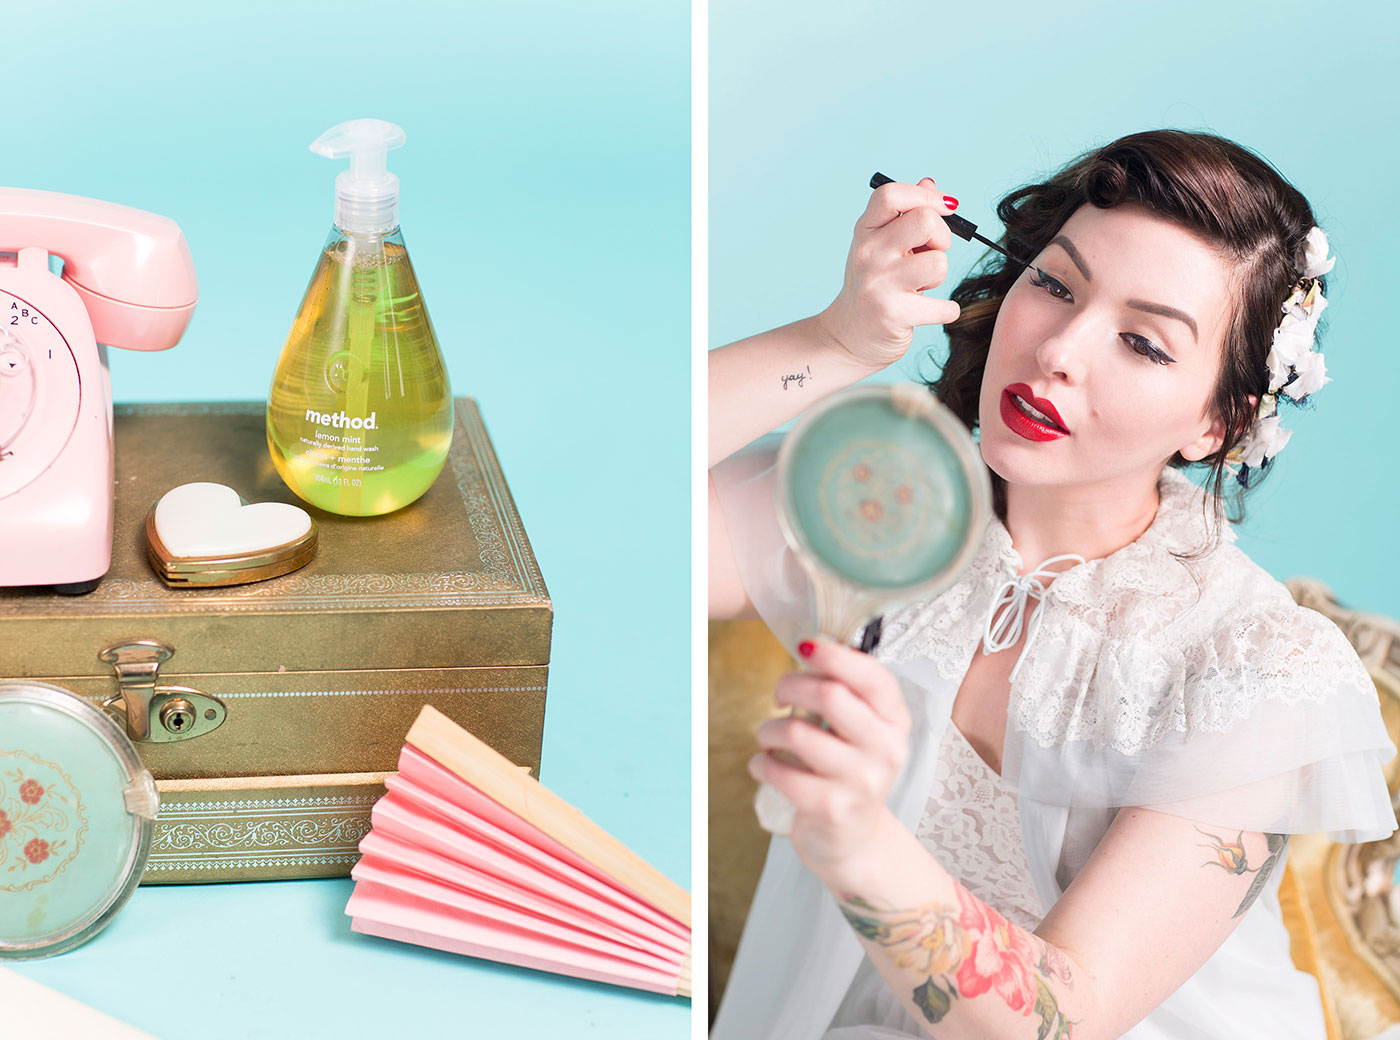 simple beauty tips and tricks, beauty hacks with everyday household items